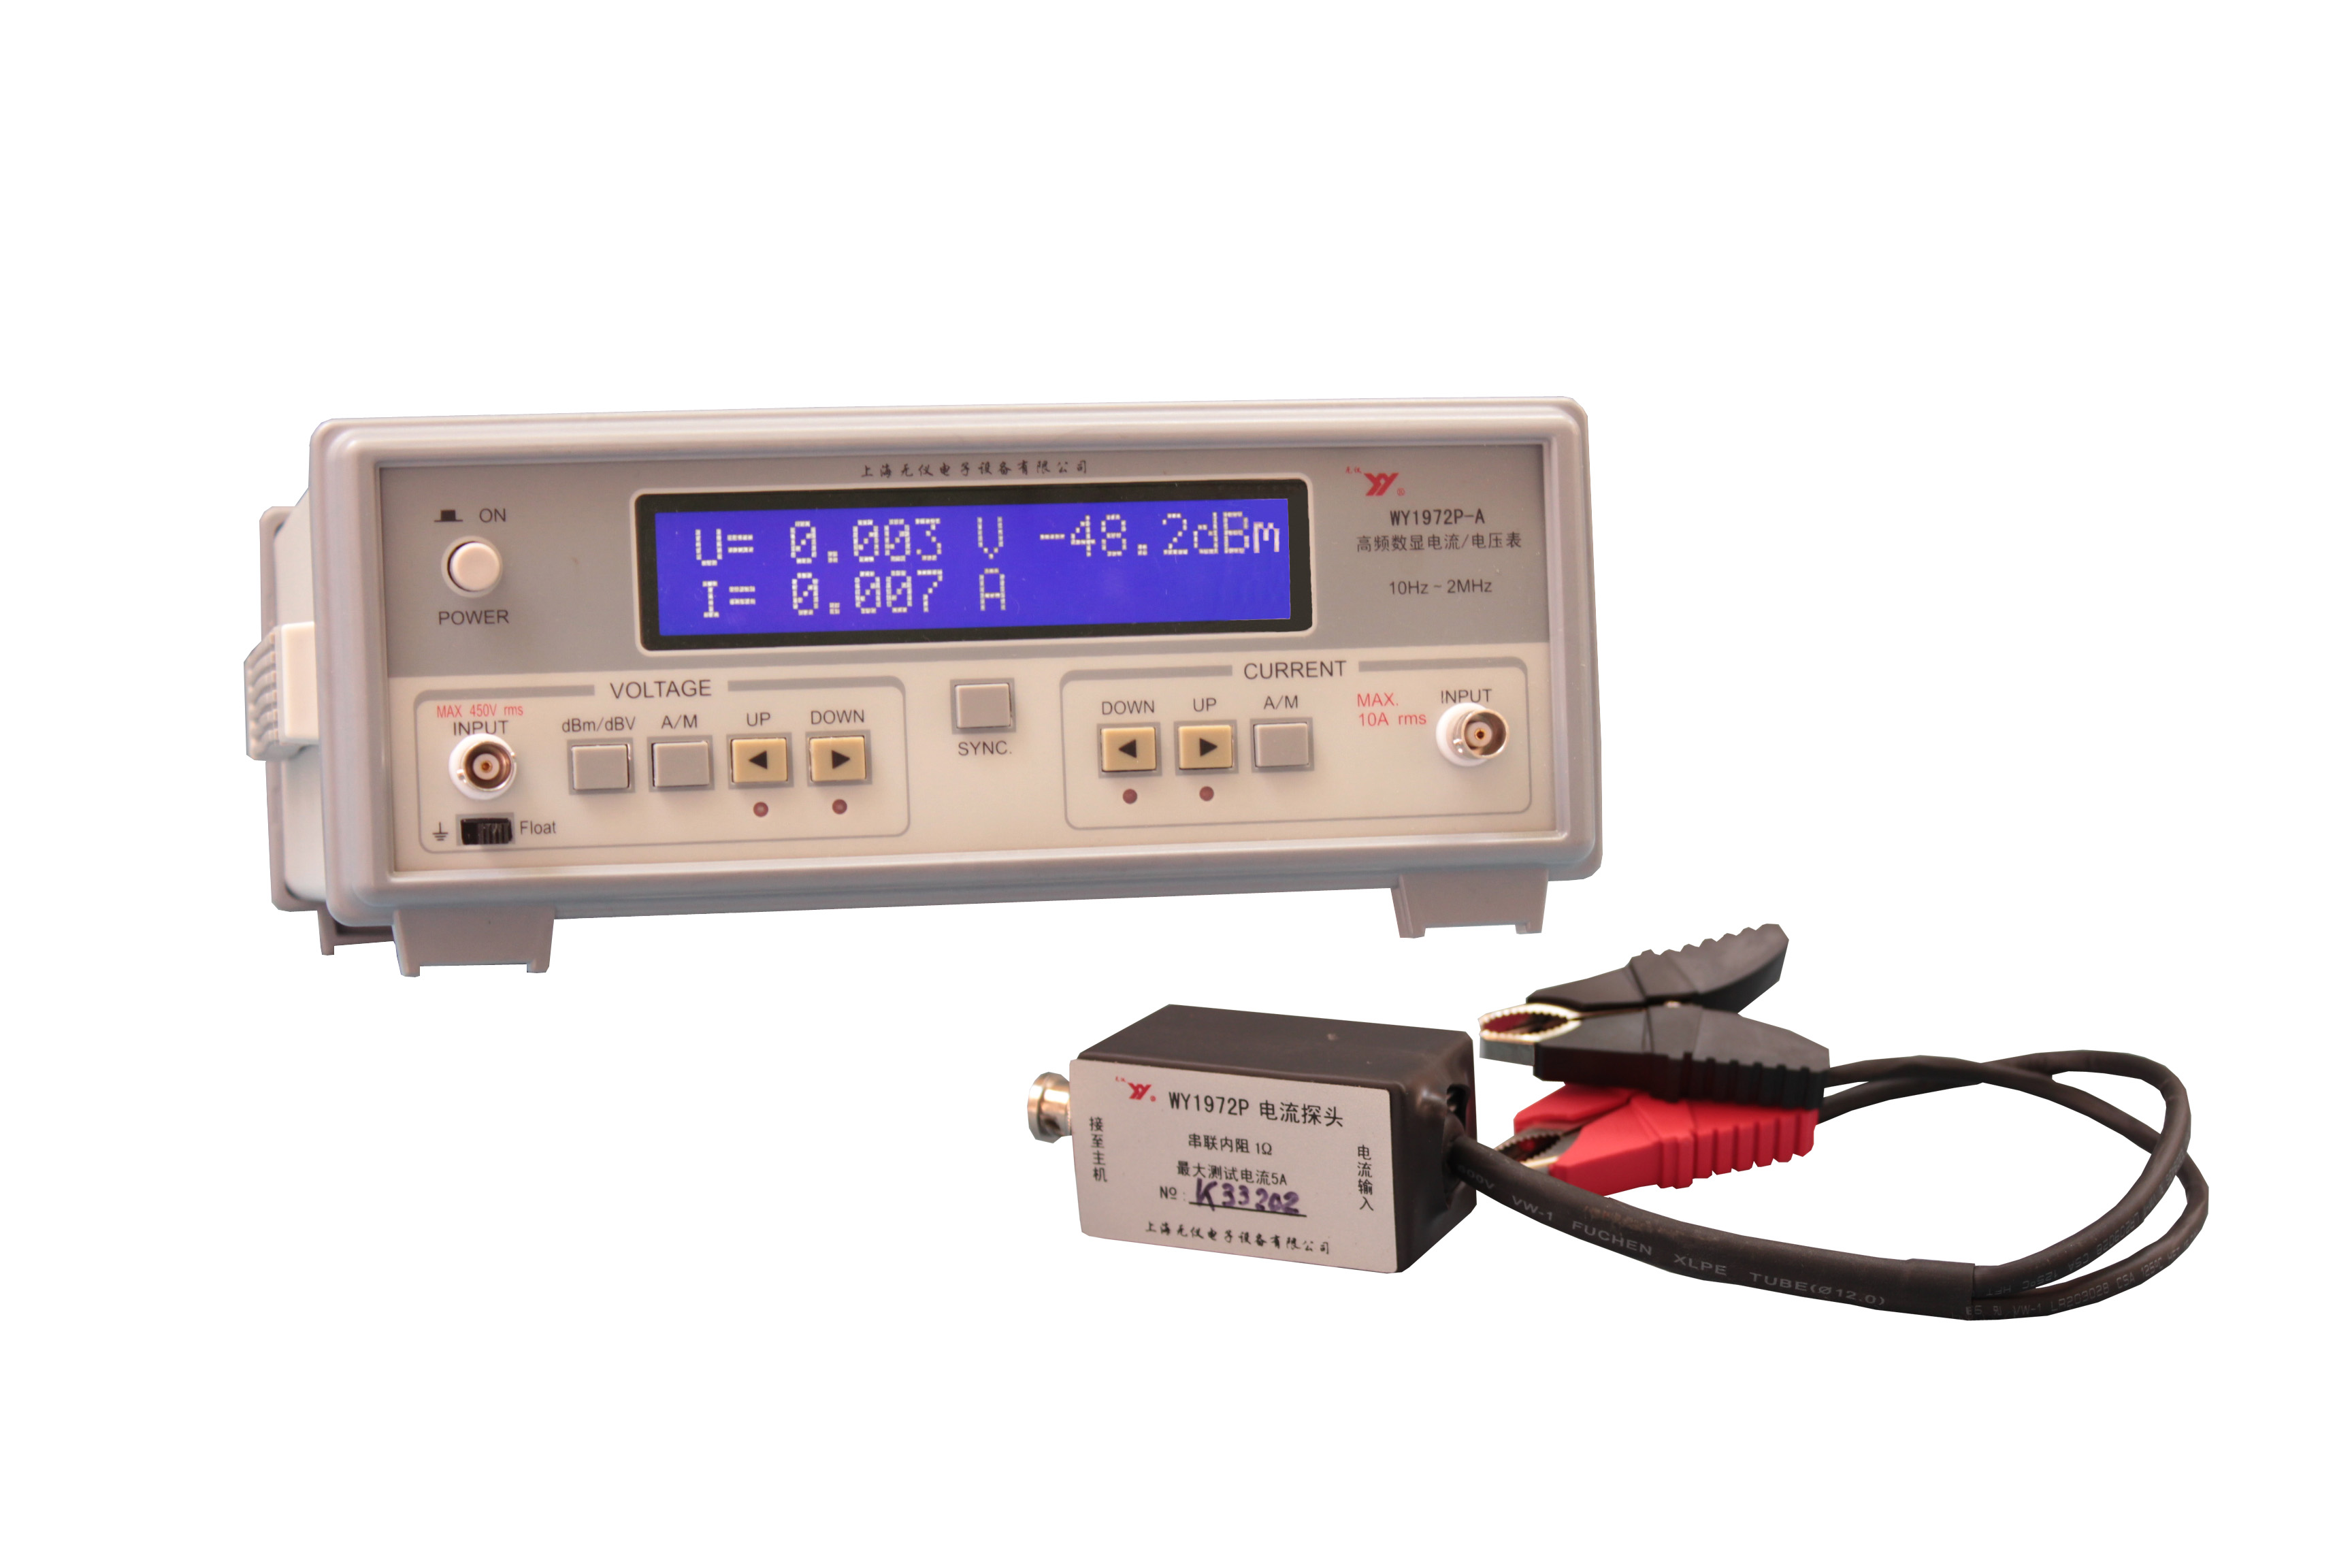 Wy1972p A Two Tunnel High Frequency Digital 2 Channels Current Rf Millivoltmeter Ammeter Millivolt Meter Is An Automatic Ac Voltage Measuring Instrument Which Controlled By The Computer